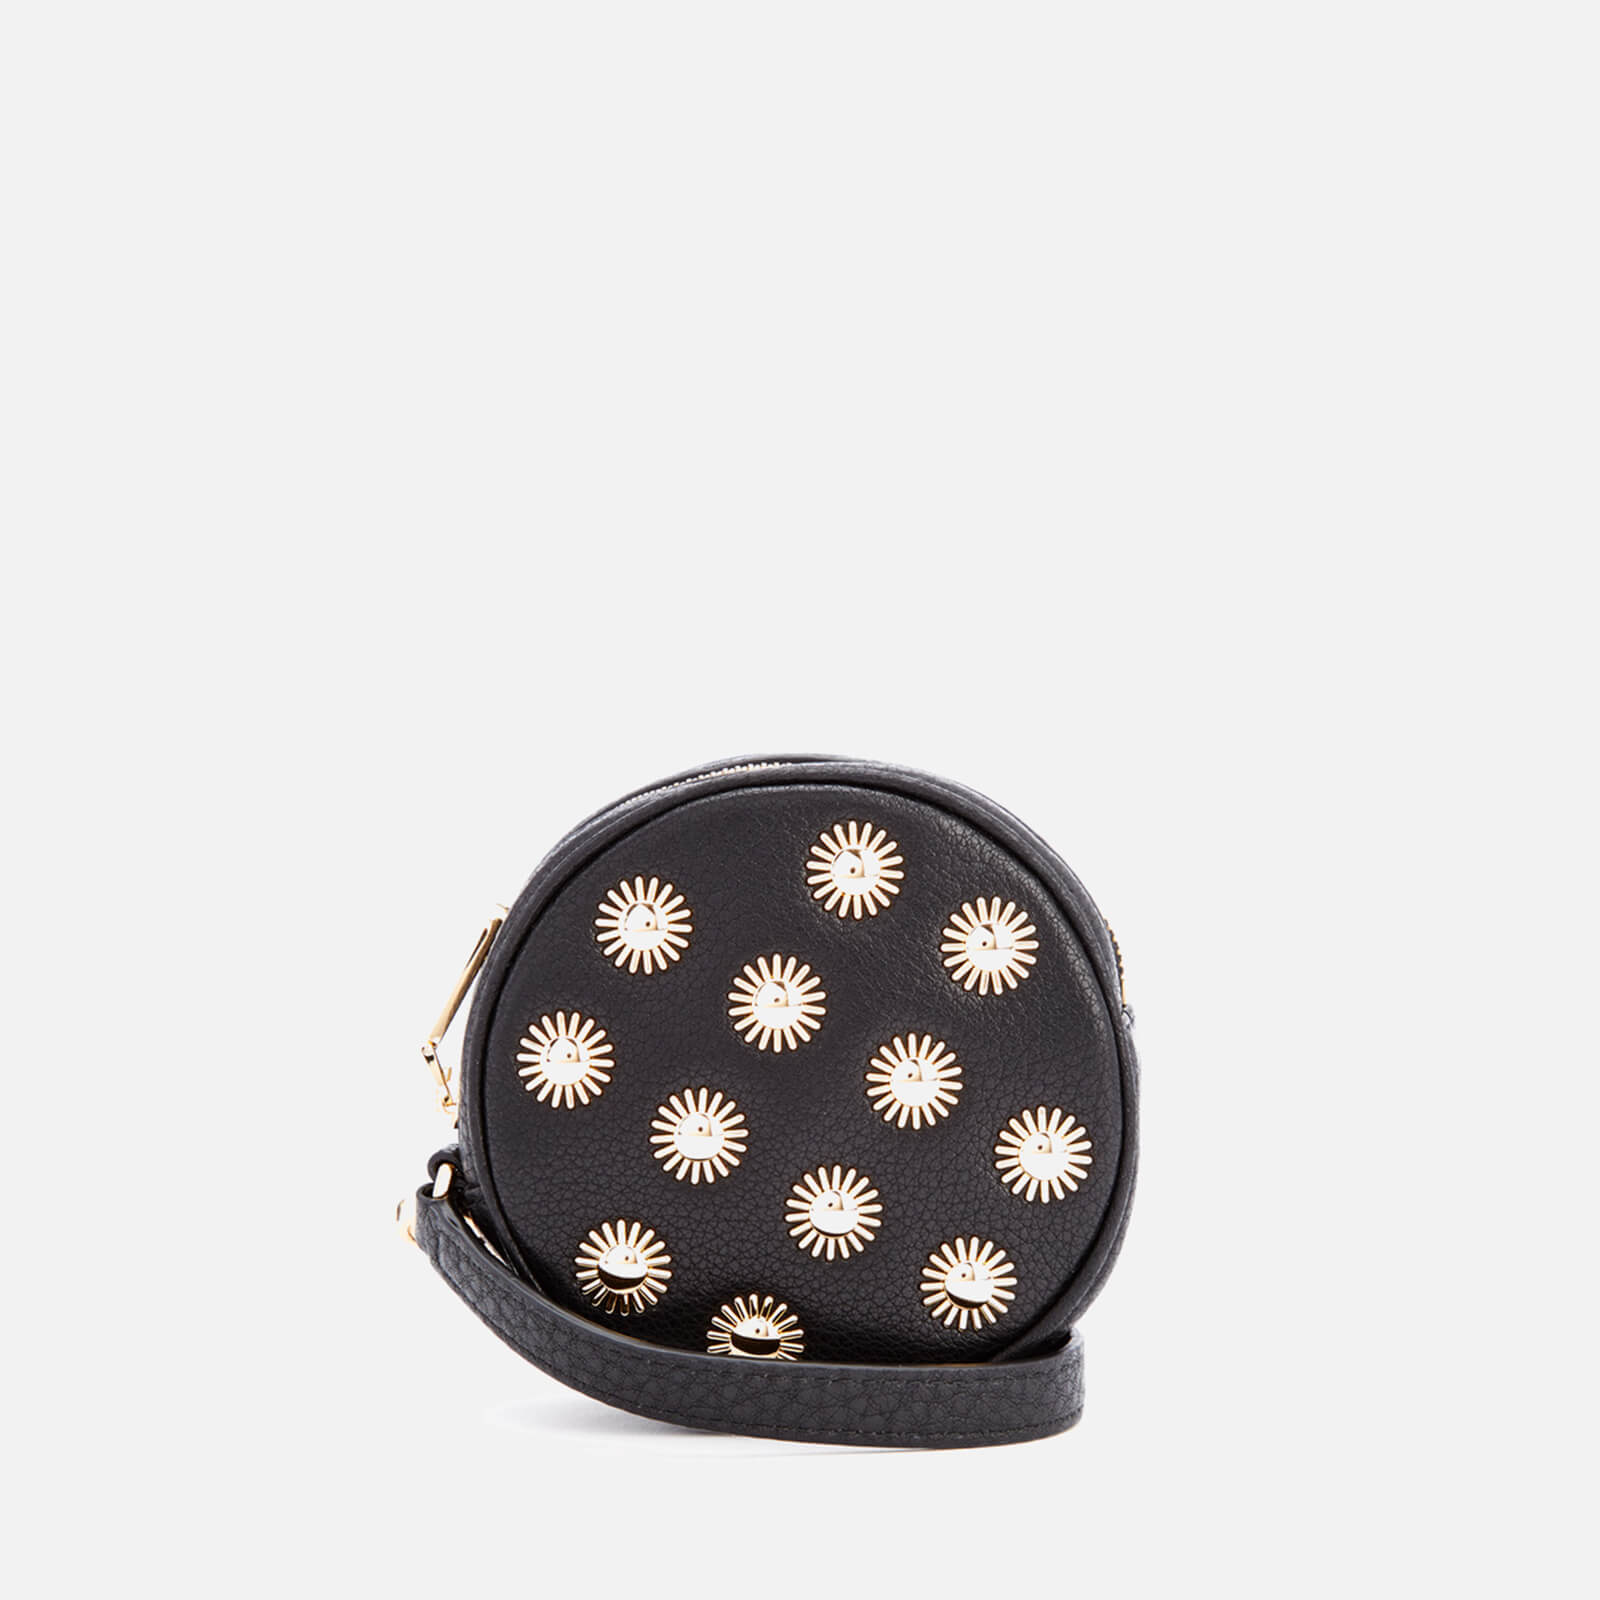 f71d65ebb51c1 MICHAEL MICHAEL KORS Women s Jet Set Stud Small Coin Purse - Black - Free  UK Delivery over £50